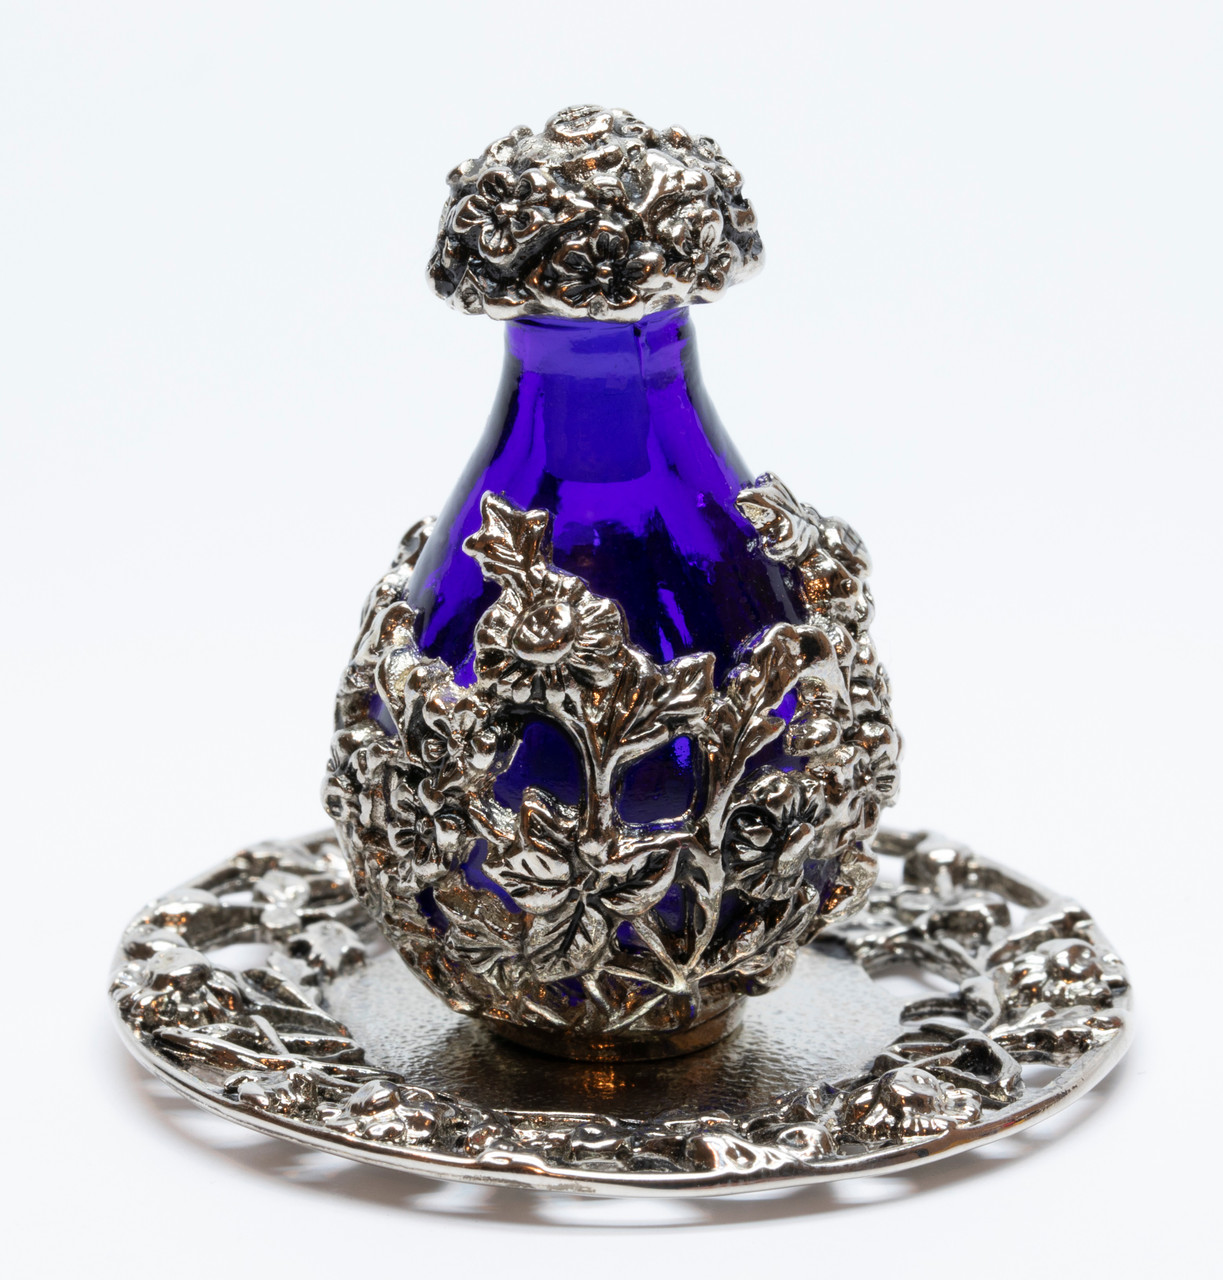 Silver with Blue Glass Victorian Tear Bottle - pictured with Optional Silver Tray - Sold Separately